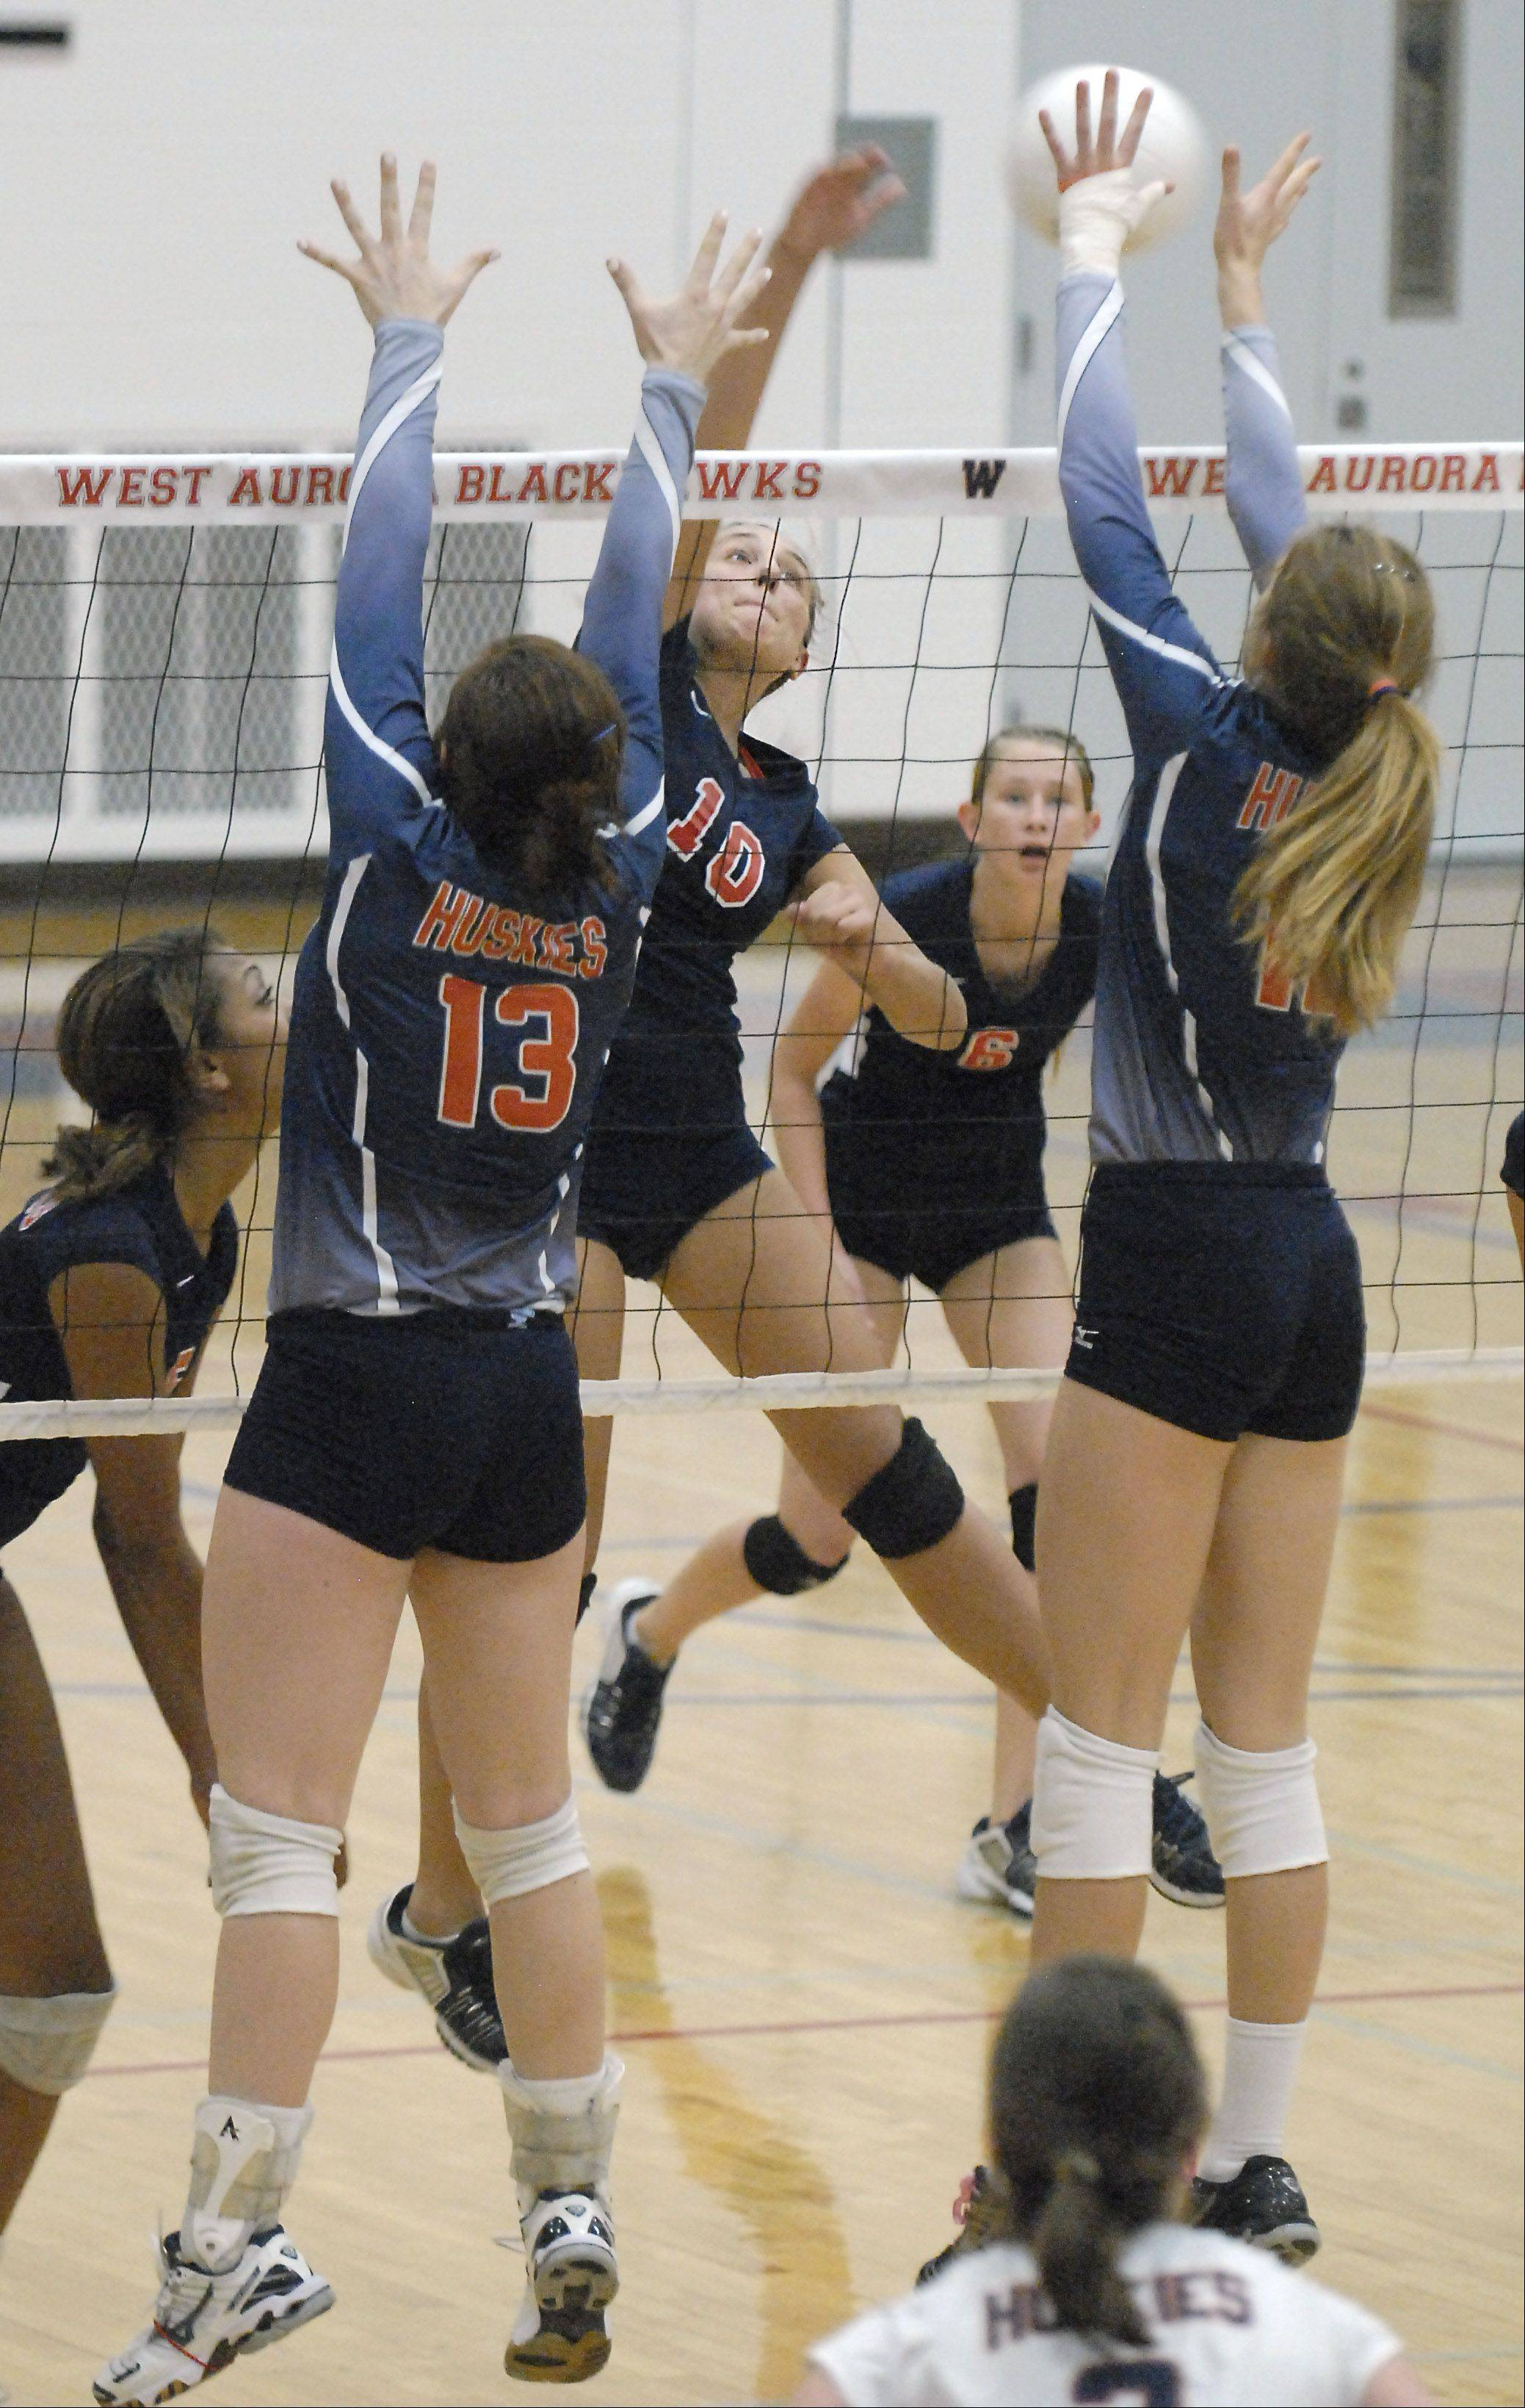 West Aurora�s Kaitlyn Richter spikes the ball over the net toward Naperville North�s Corinne Gajcak, left and Becky Welch, right, in the second game on Thursday, October 11.